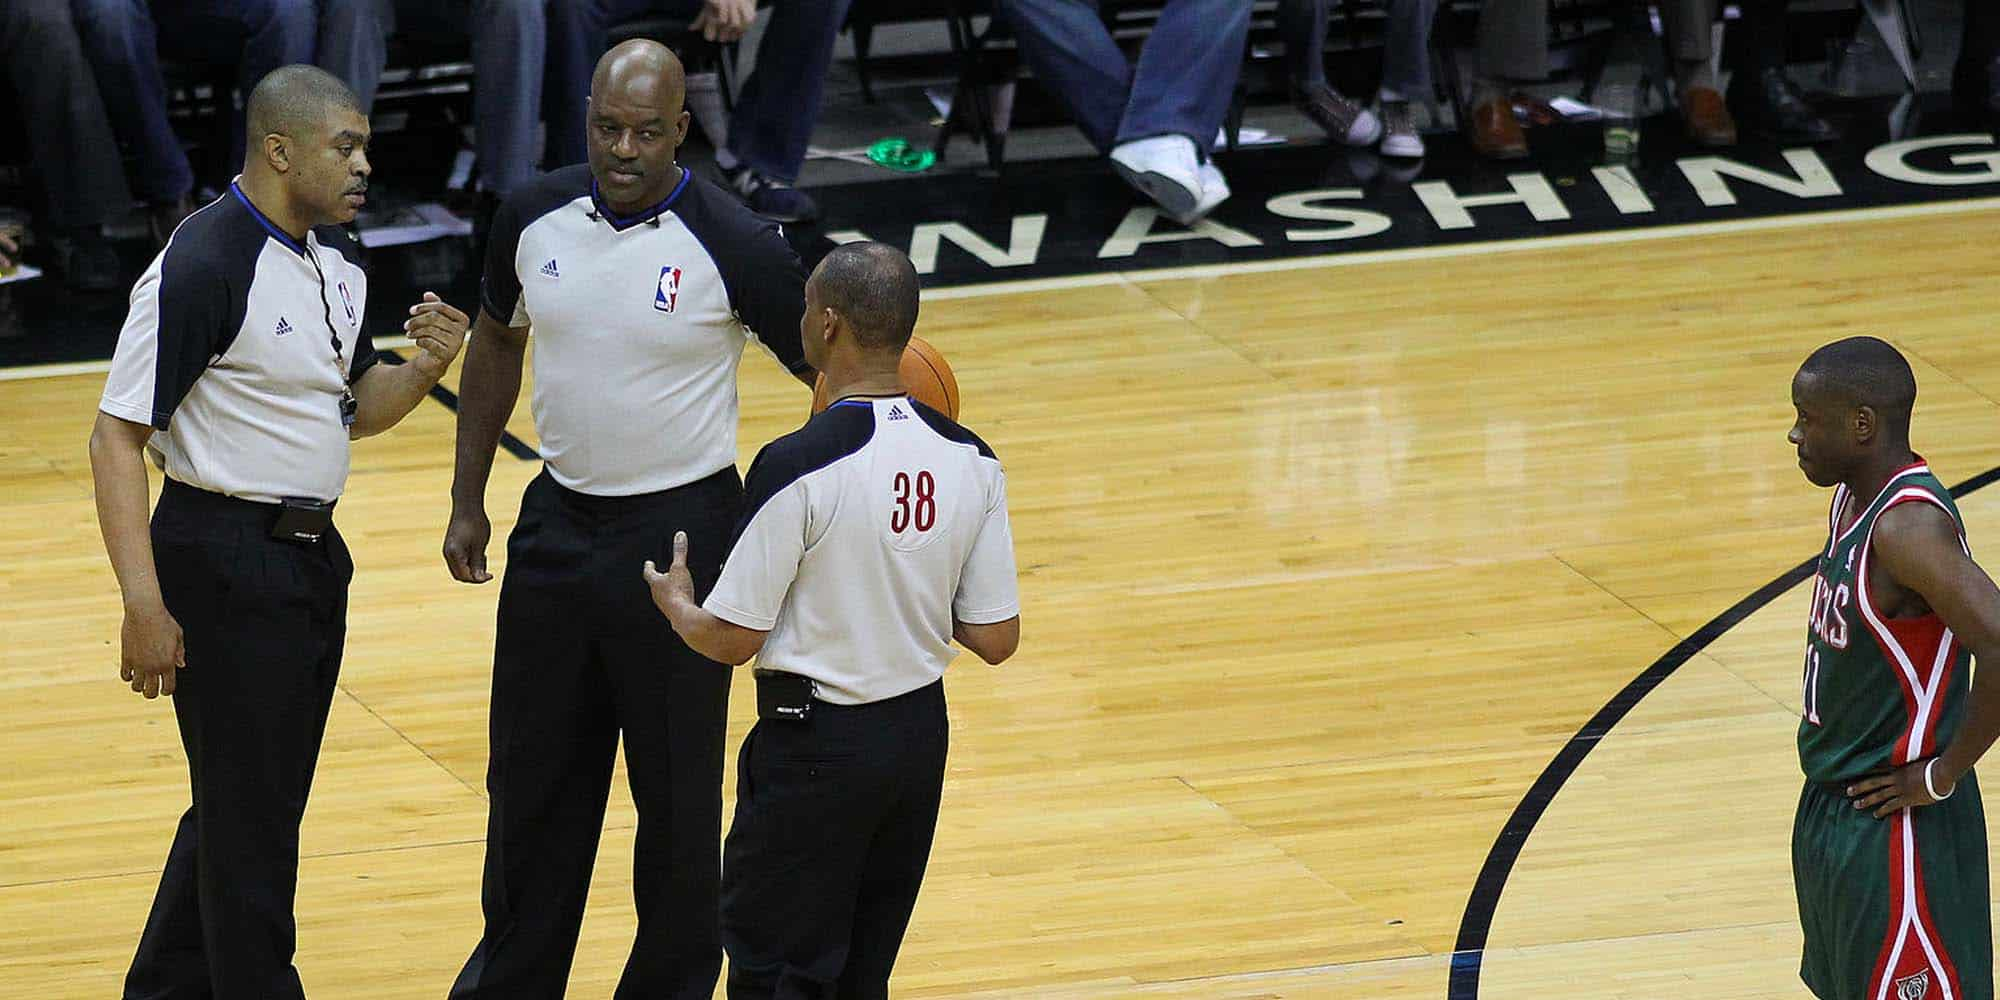 nba referees officiating a match